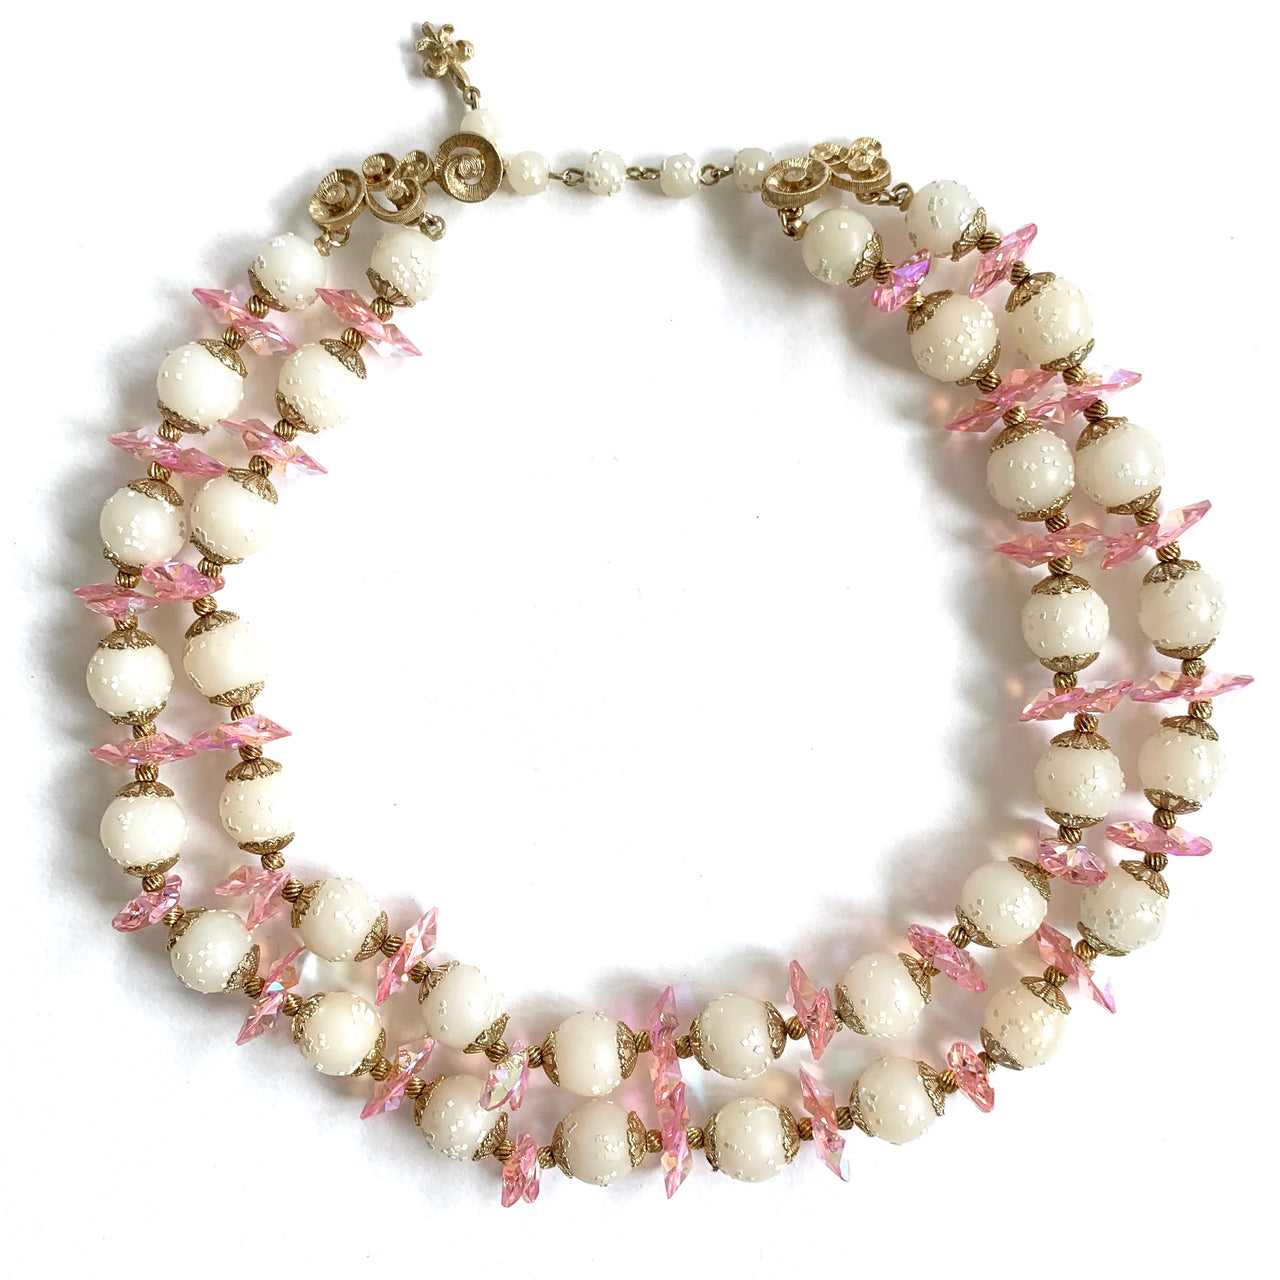 1950s Vintage Vendome Double Row Necklace, Cream, Pink